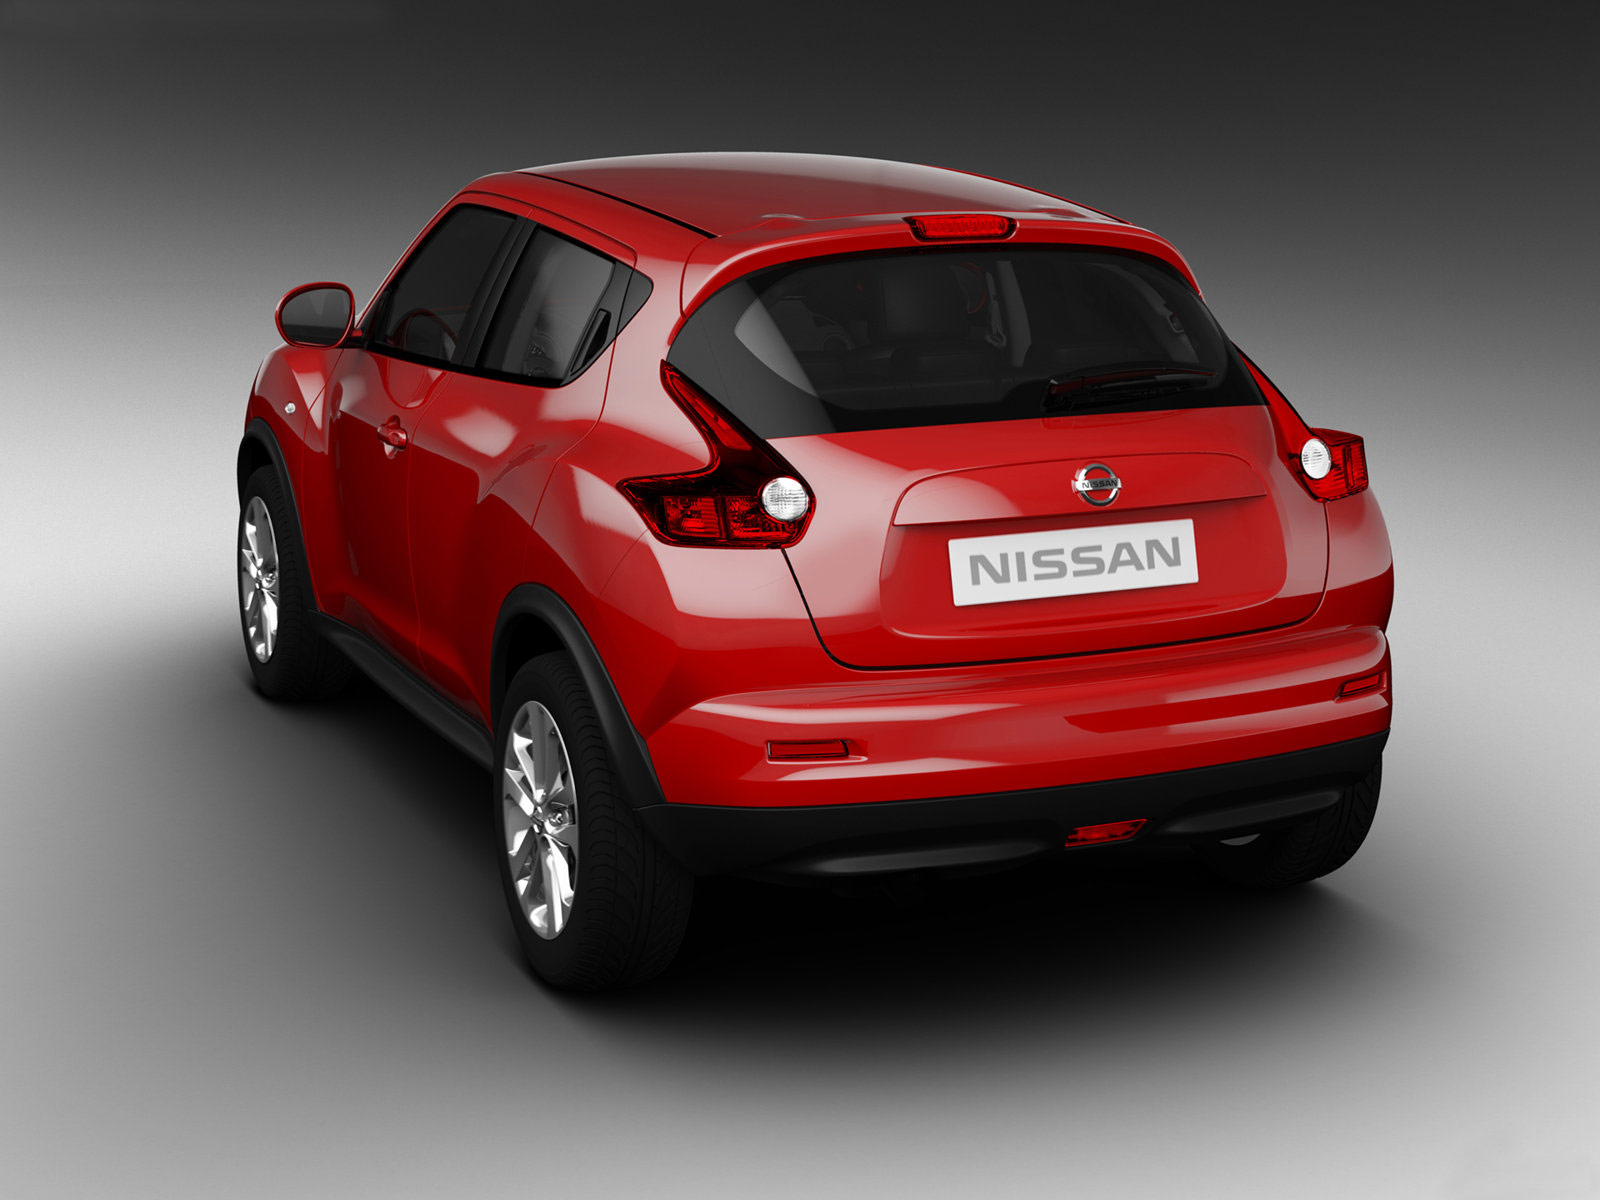 Nissan-Juke_2011_japanese_car_pictures-1